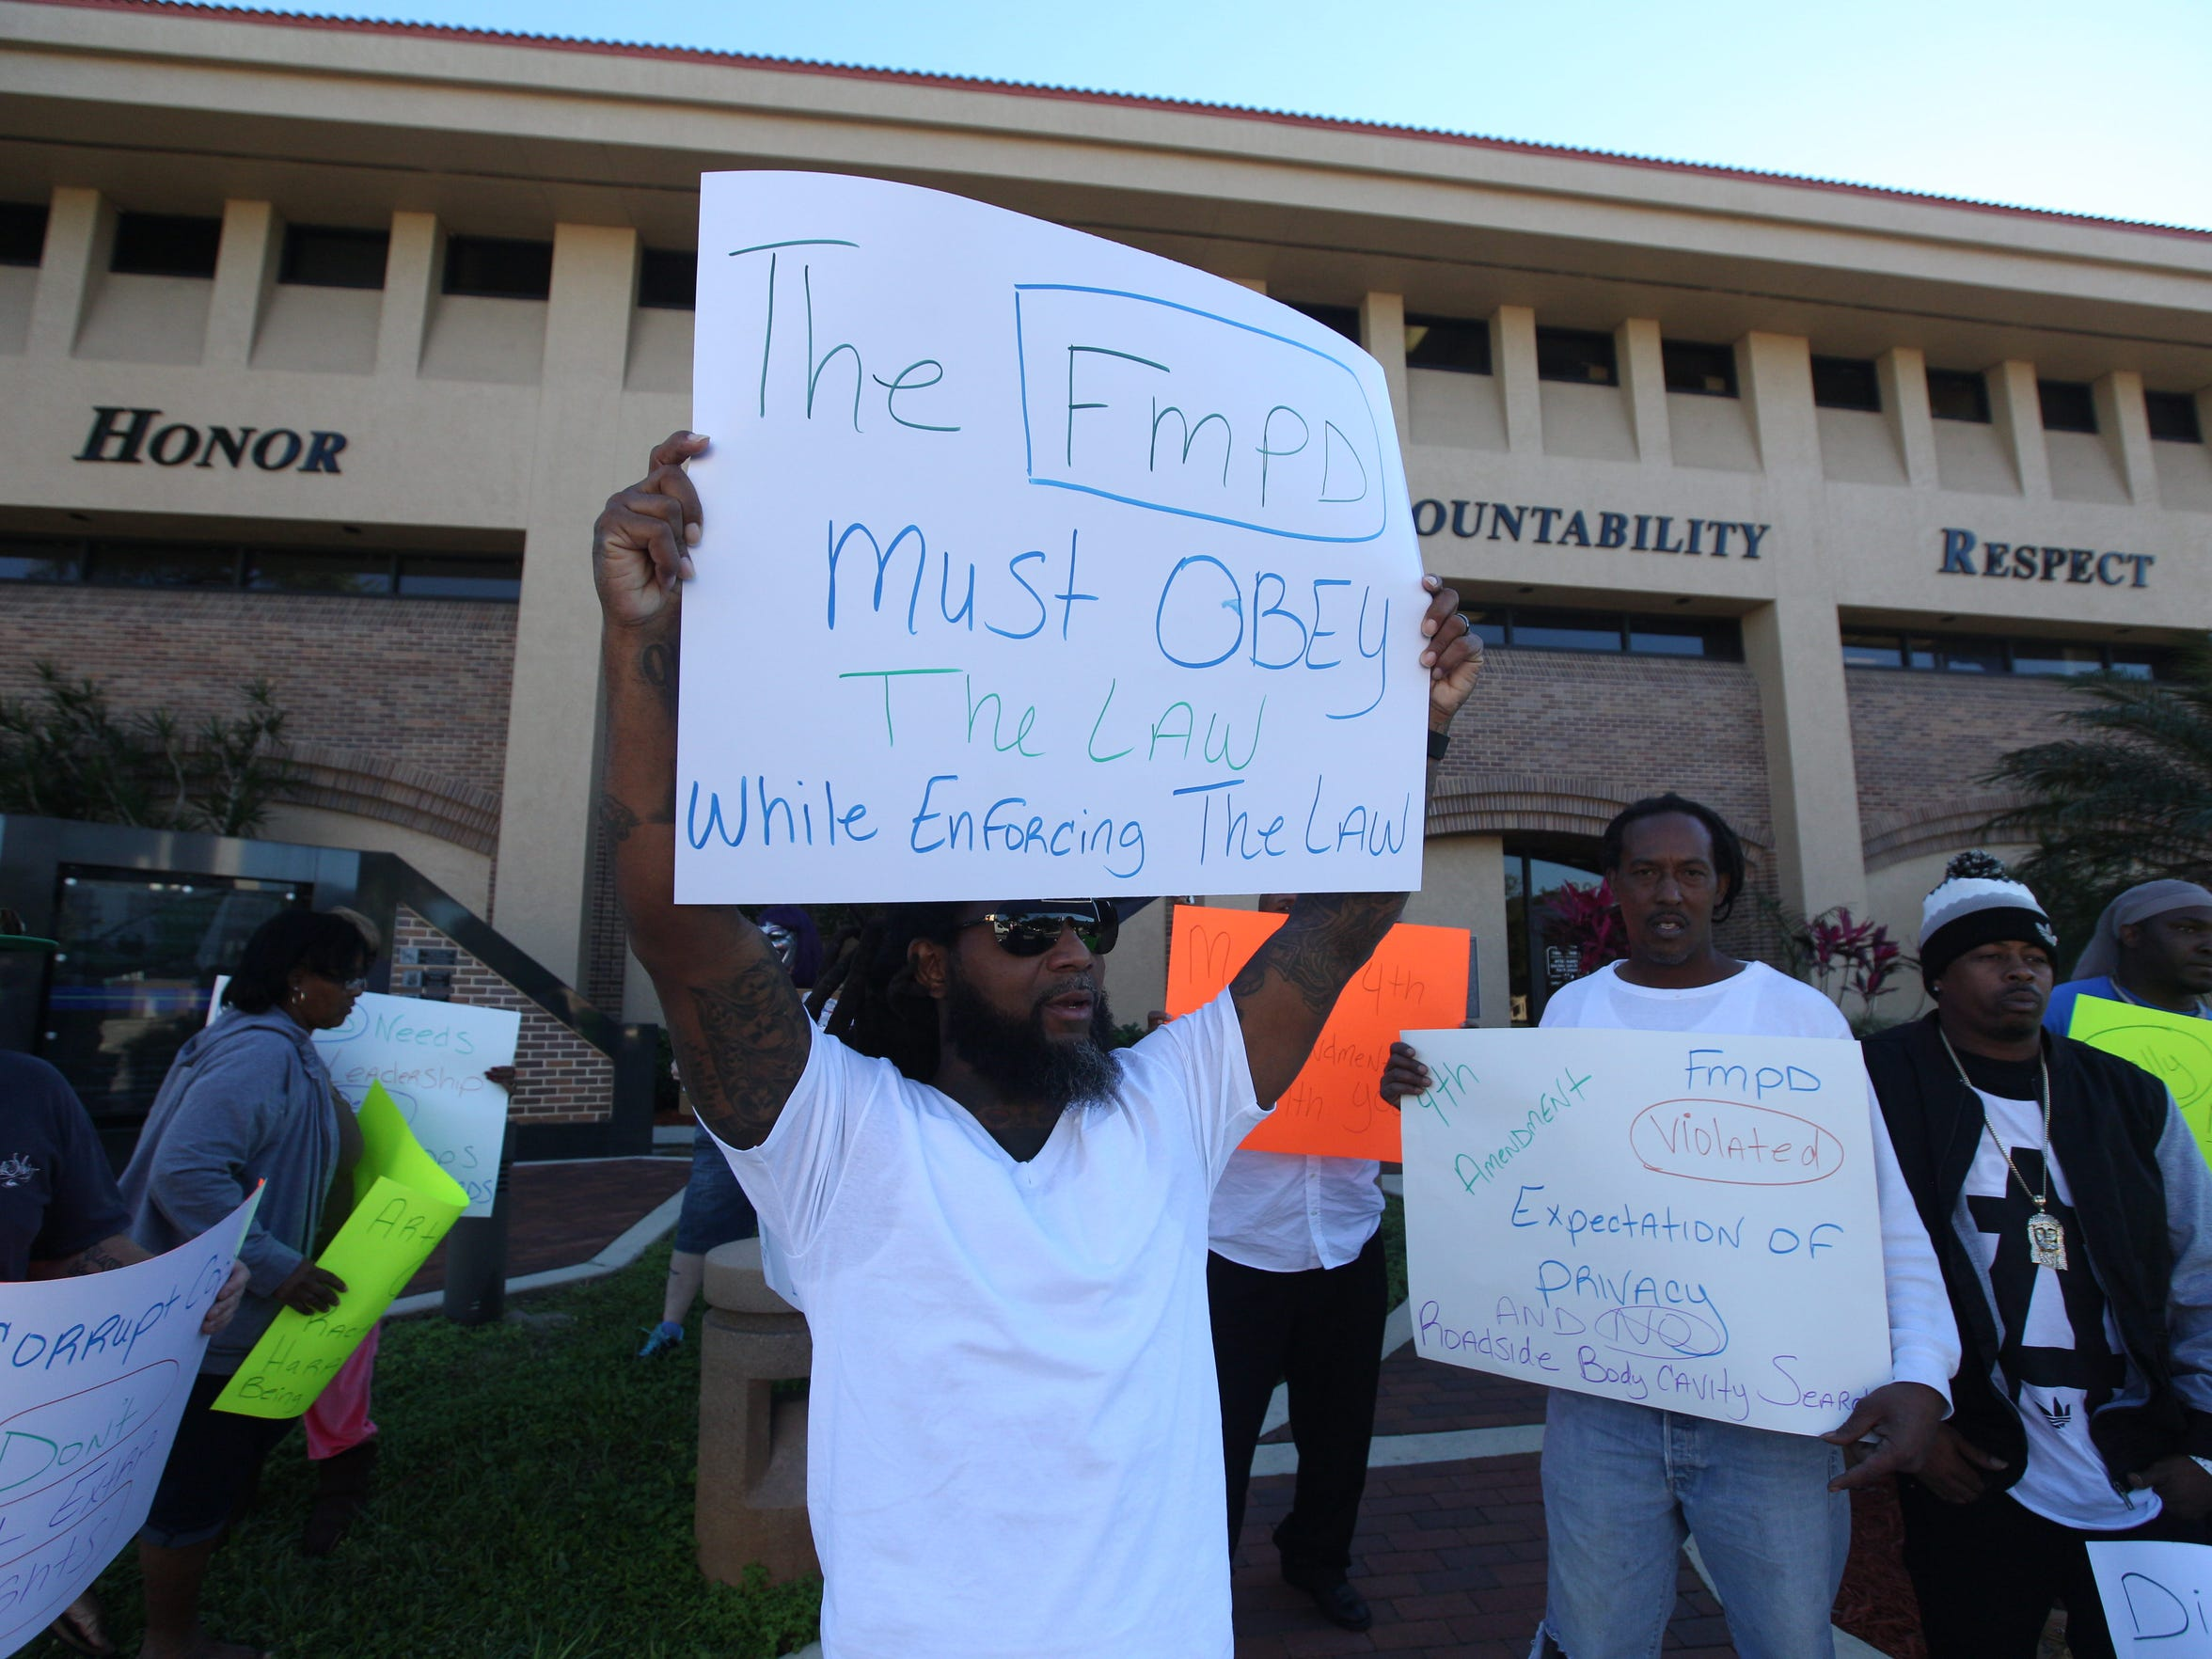 A small group of people protested alleged police misconduct and illegal searches at the Fort Myers Police Department.  The group then marched to and attended the Fort Myers City Council meeting.